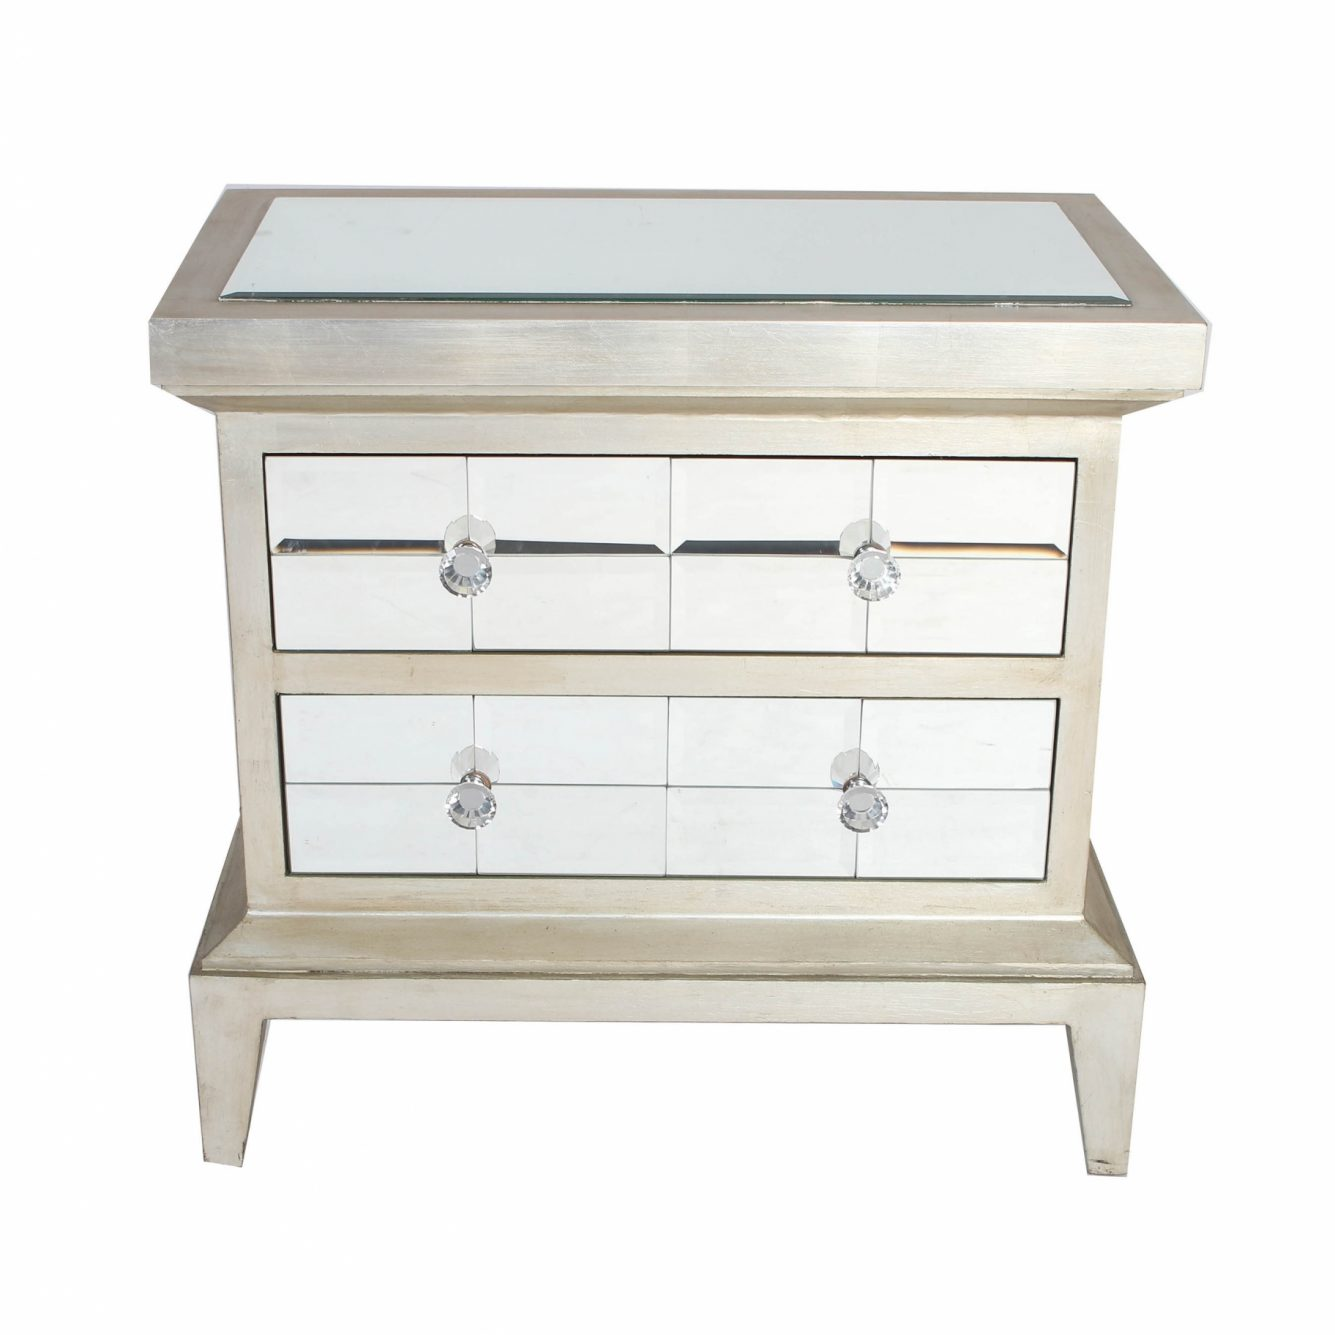 HH Products 0038 HOUSE HAVEN FURNITURE 49